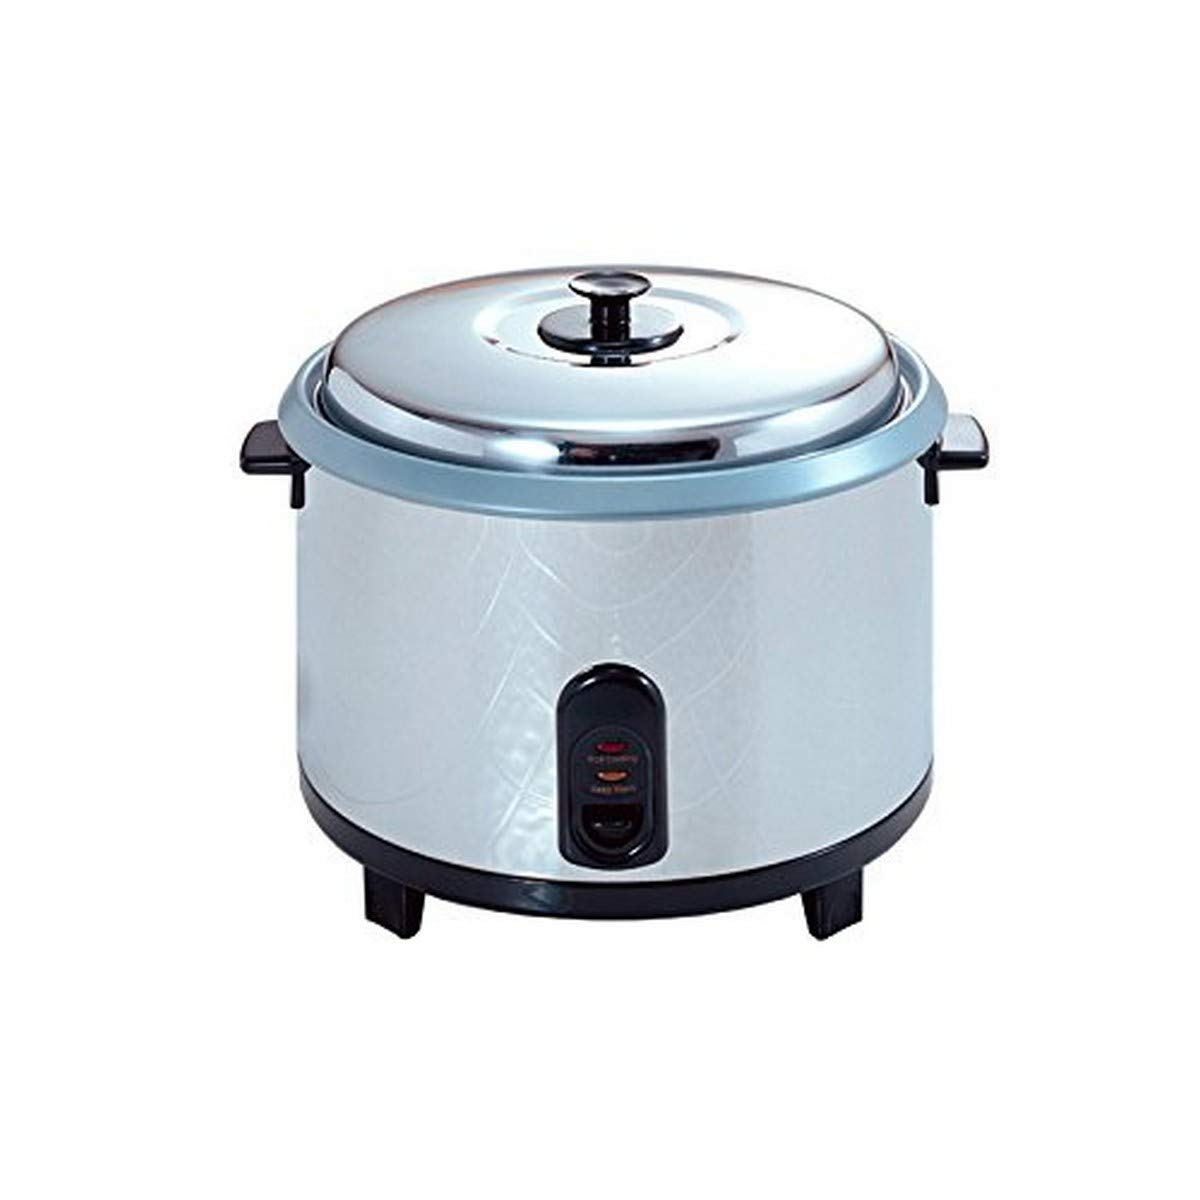 Boswell Commercial Equipment S160 Rice Cooker, 23 Cups, 4.2 L, 17